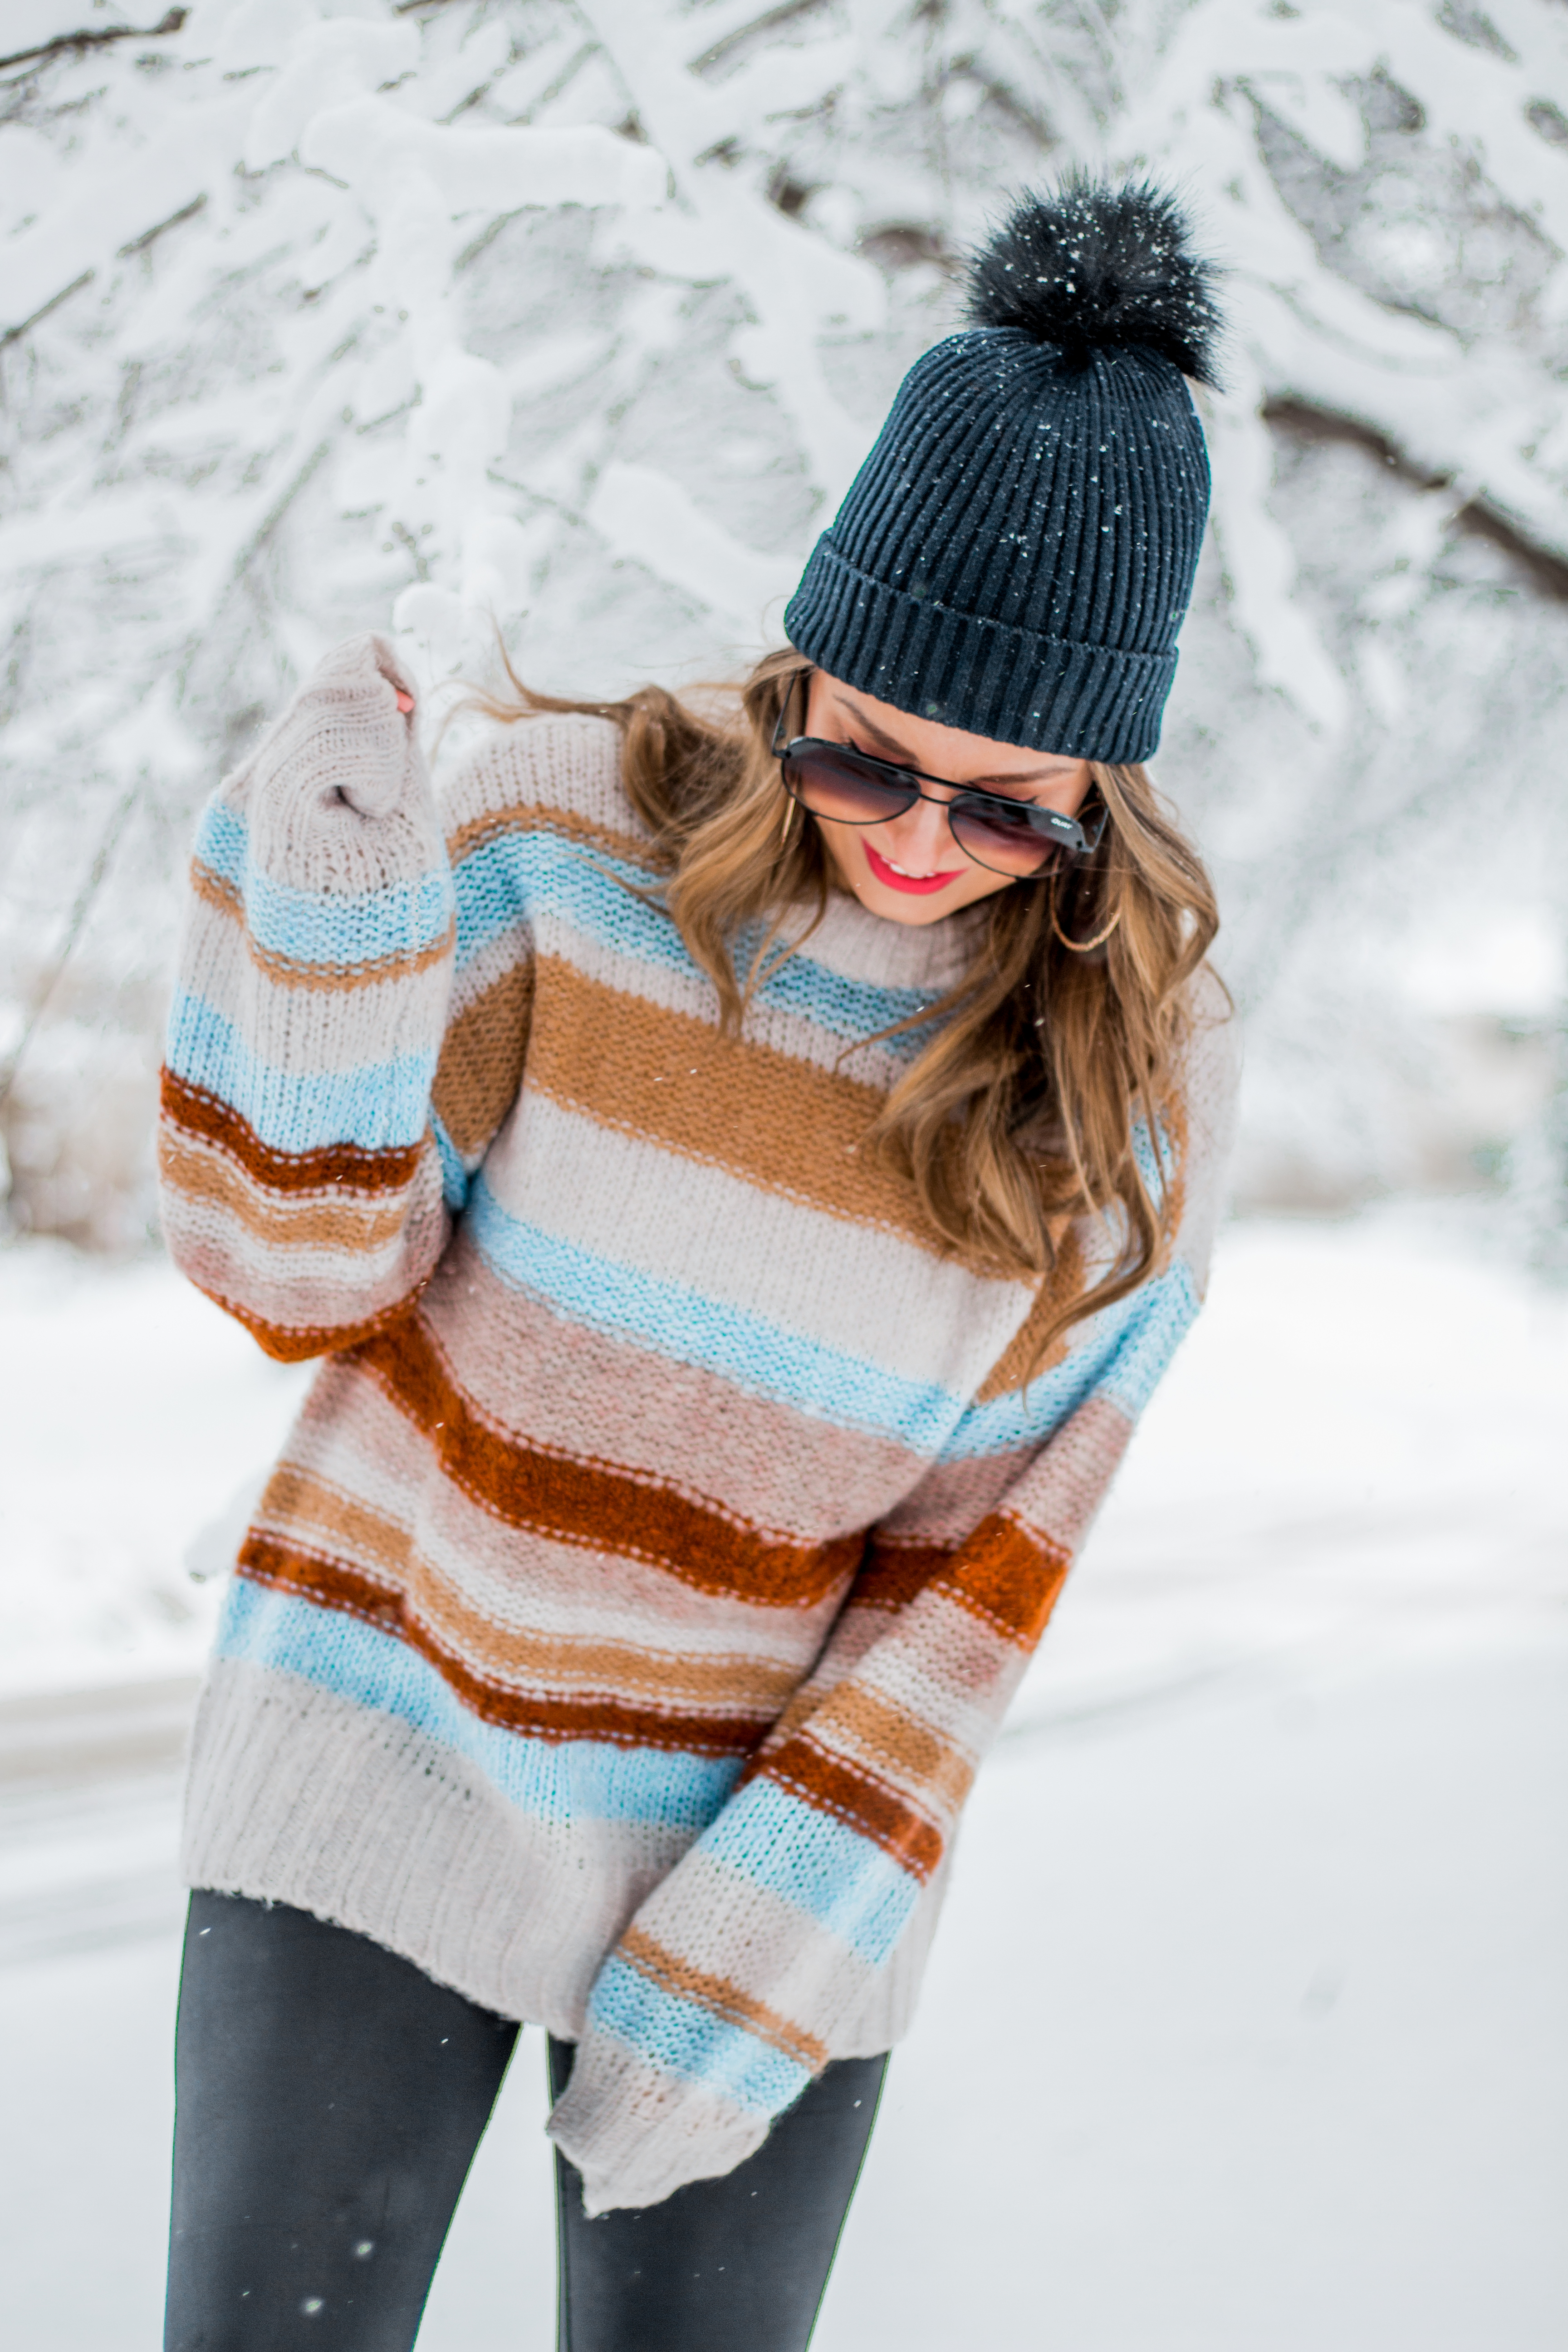 Women's Fashion - American Eagle Sweater - Hunter Boots - Beanie - Snow Day - OOTD - Fashion Blogger - Winter Fashion - 5